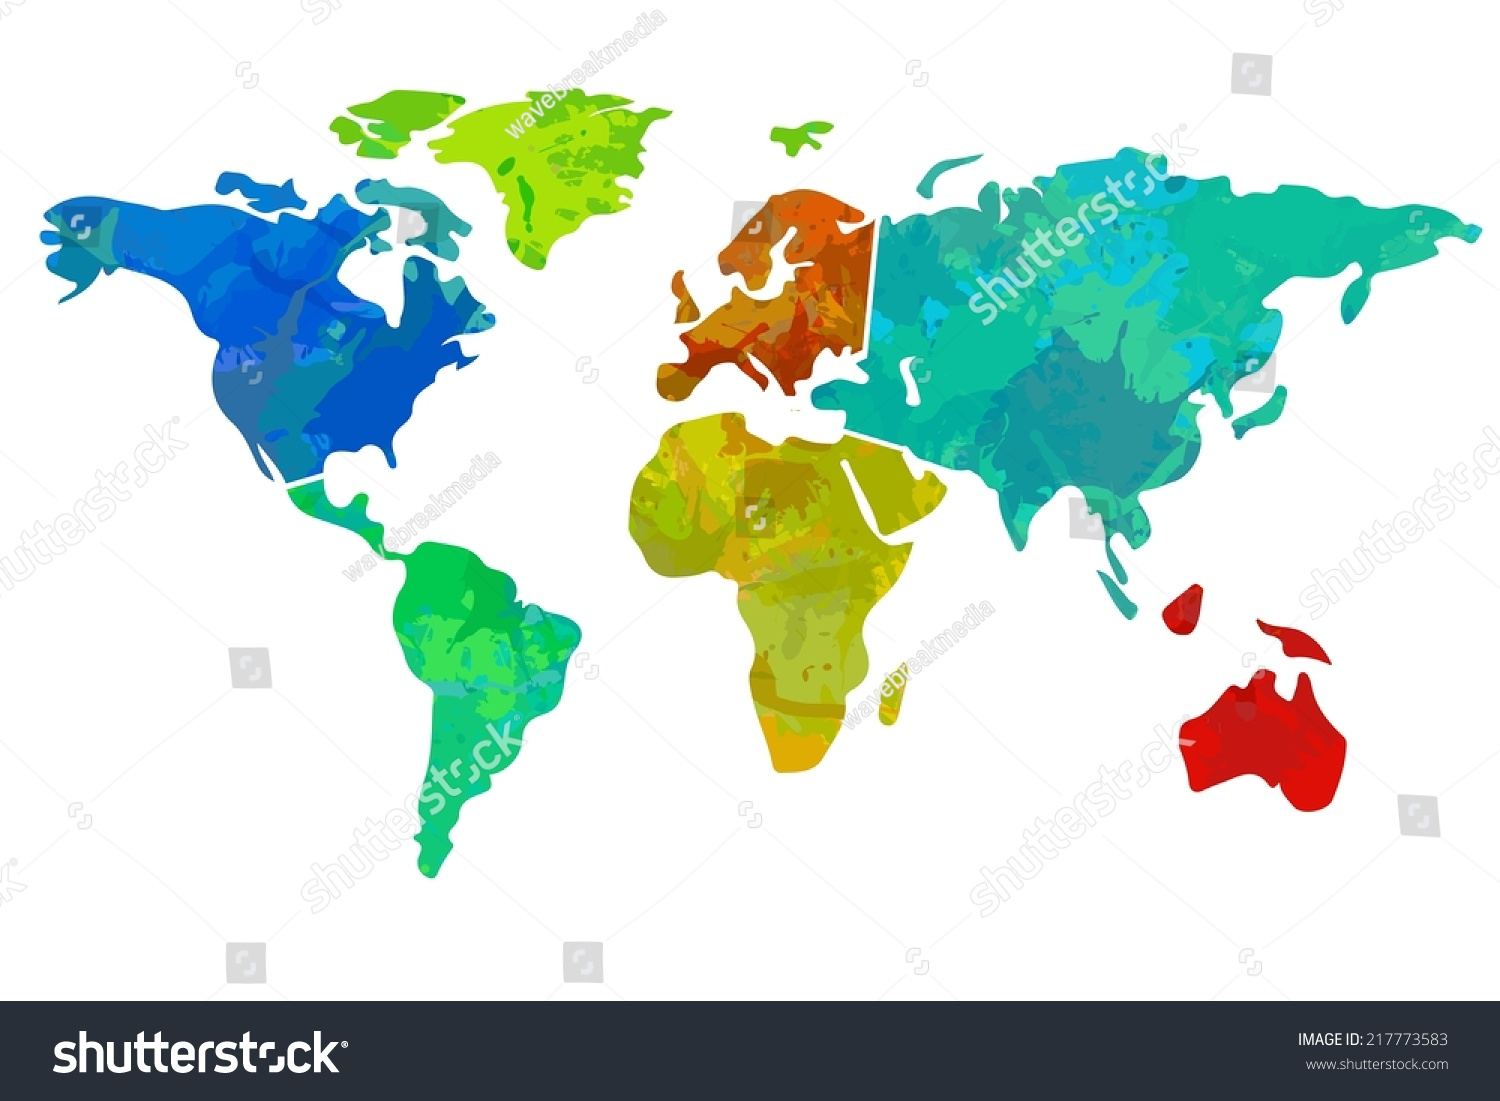 Colourful world map on white background stock illustration 217773583 colourful world map on white background gumiabroncs Gallery